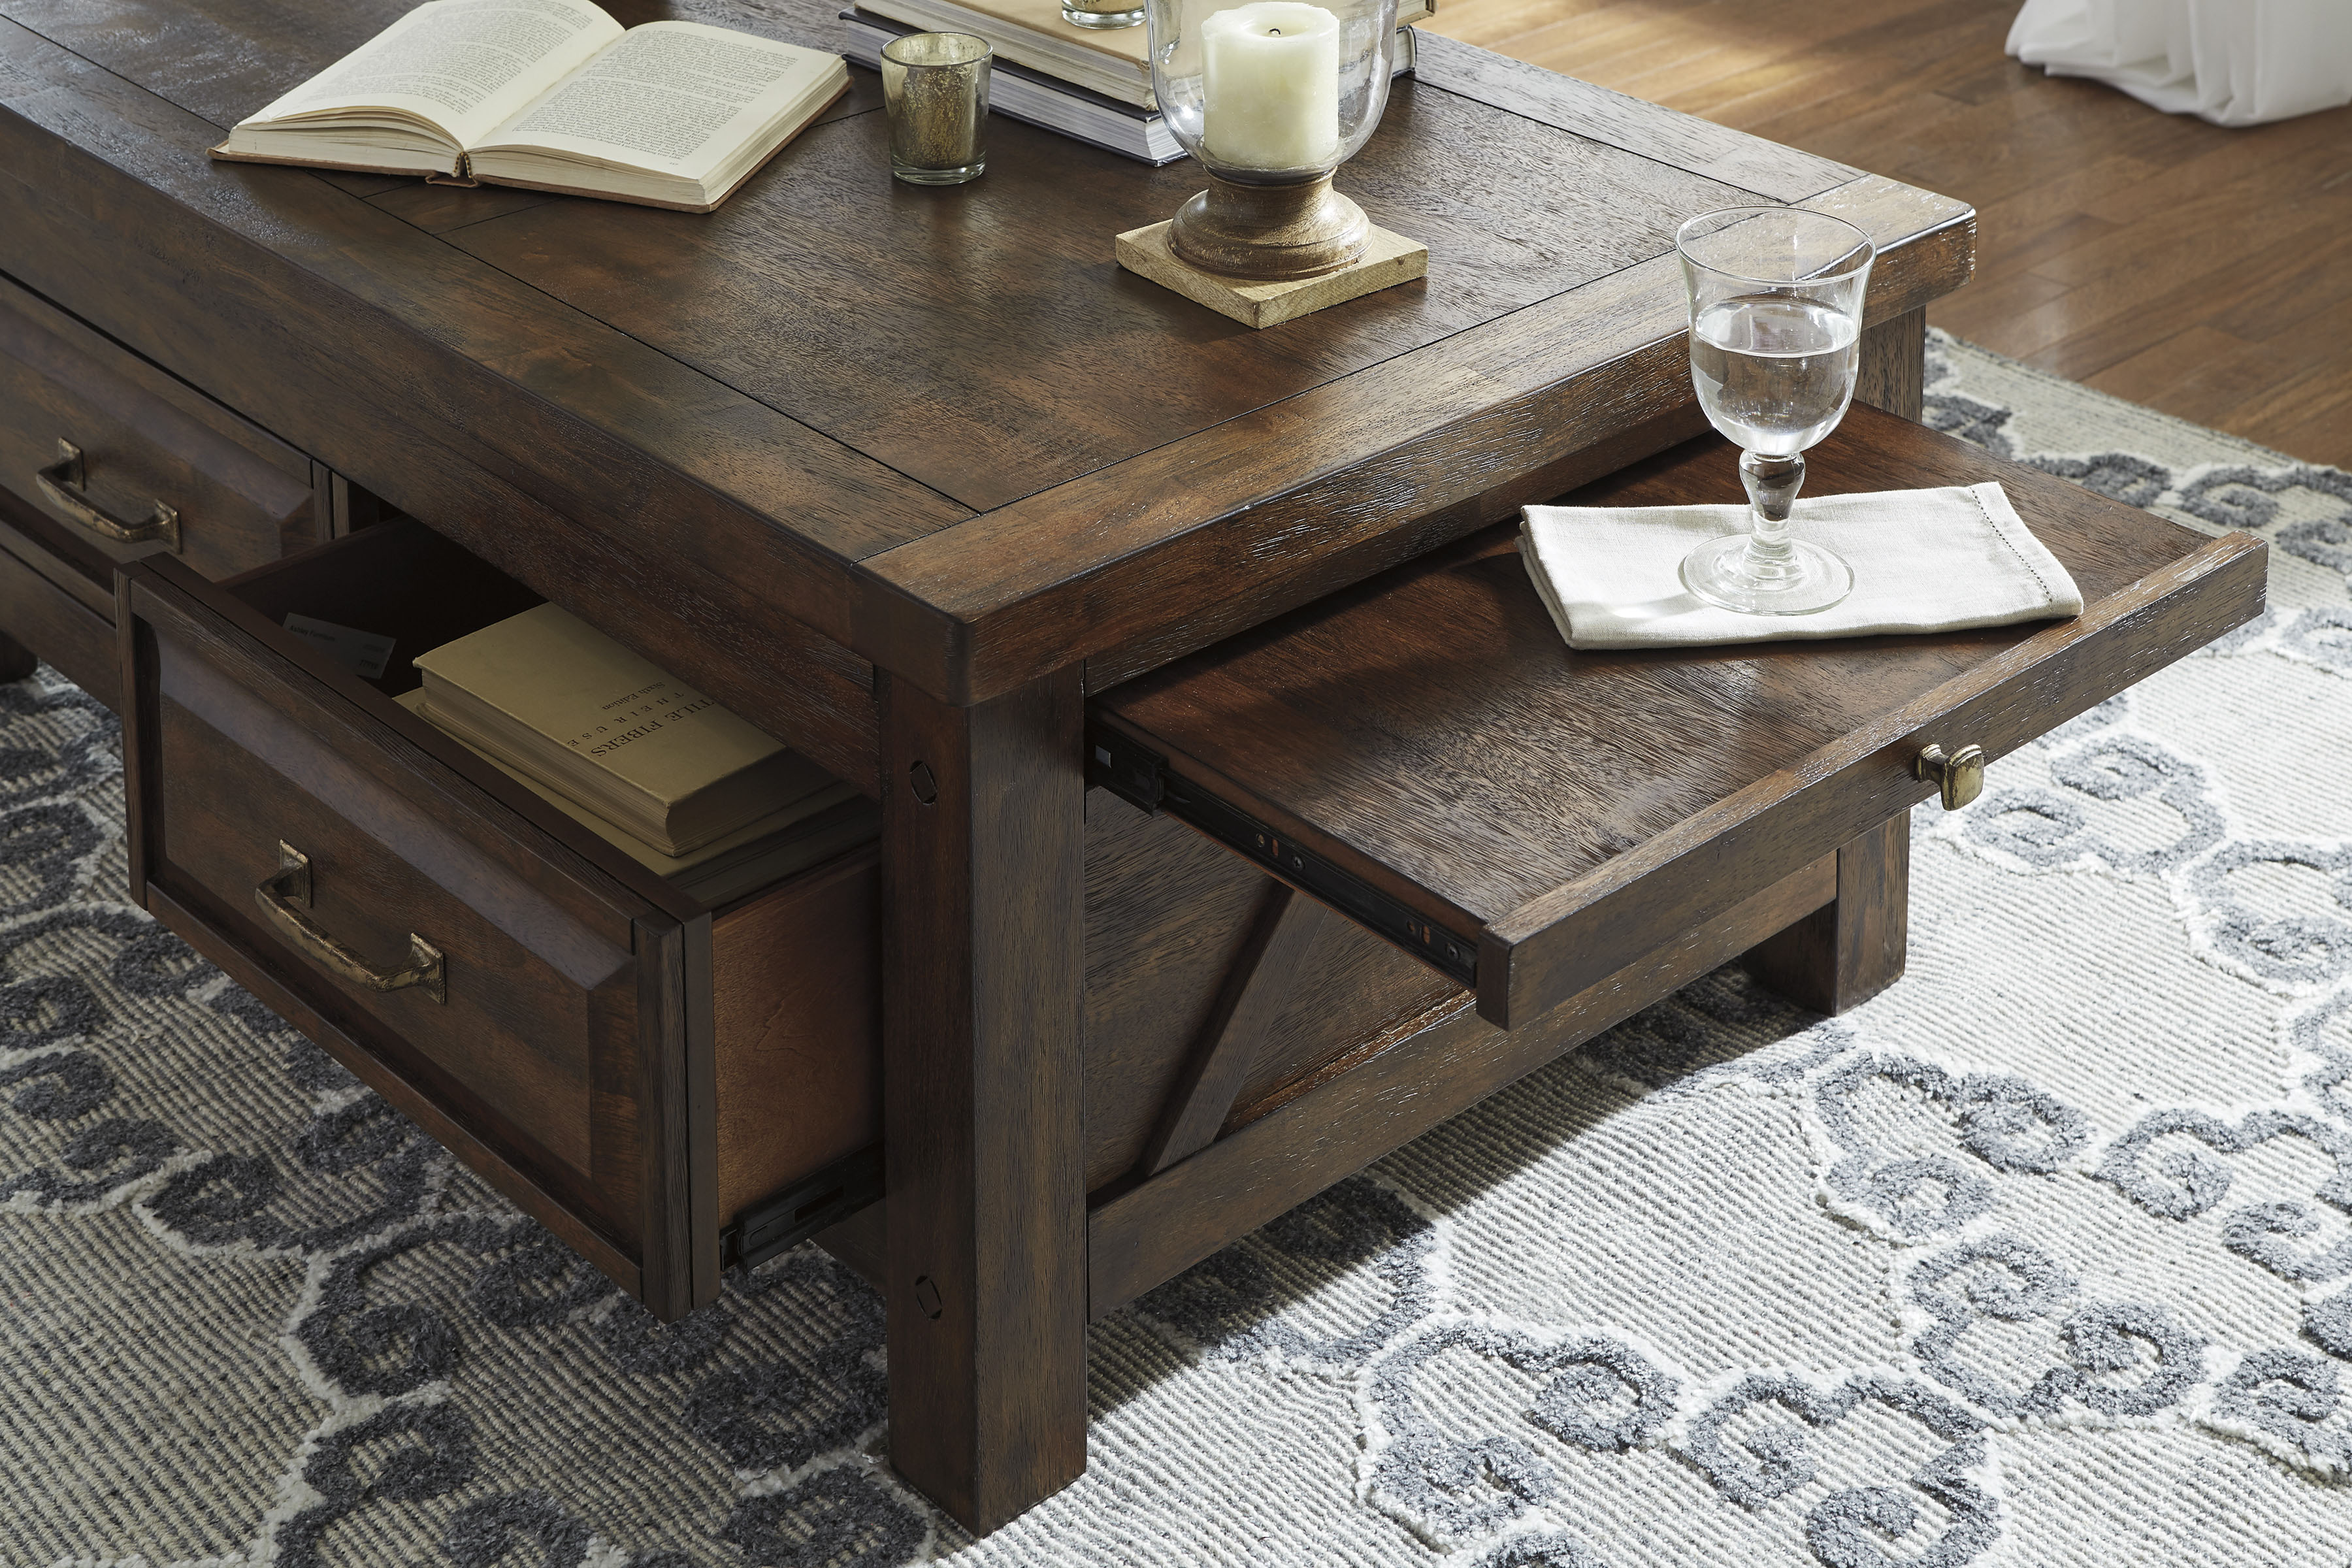 5 Coffee Table Ideas for Your Living Room